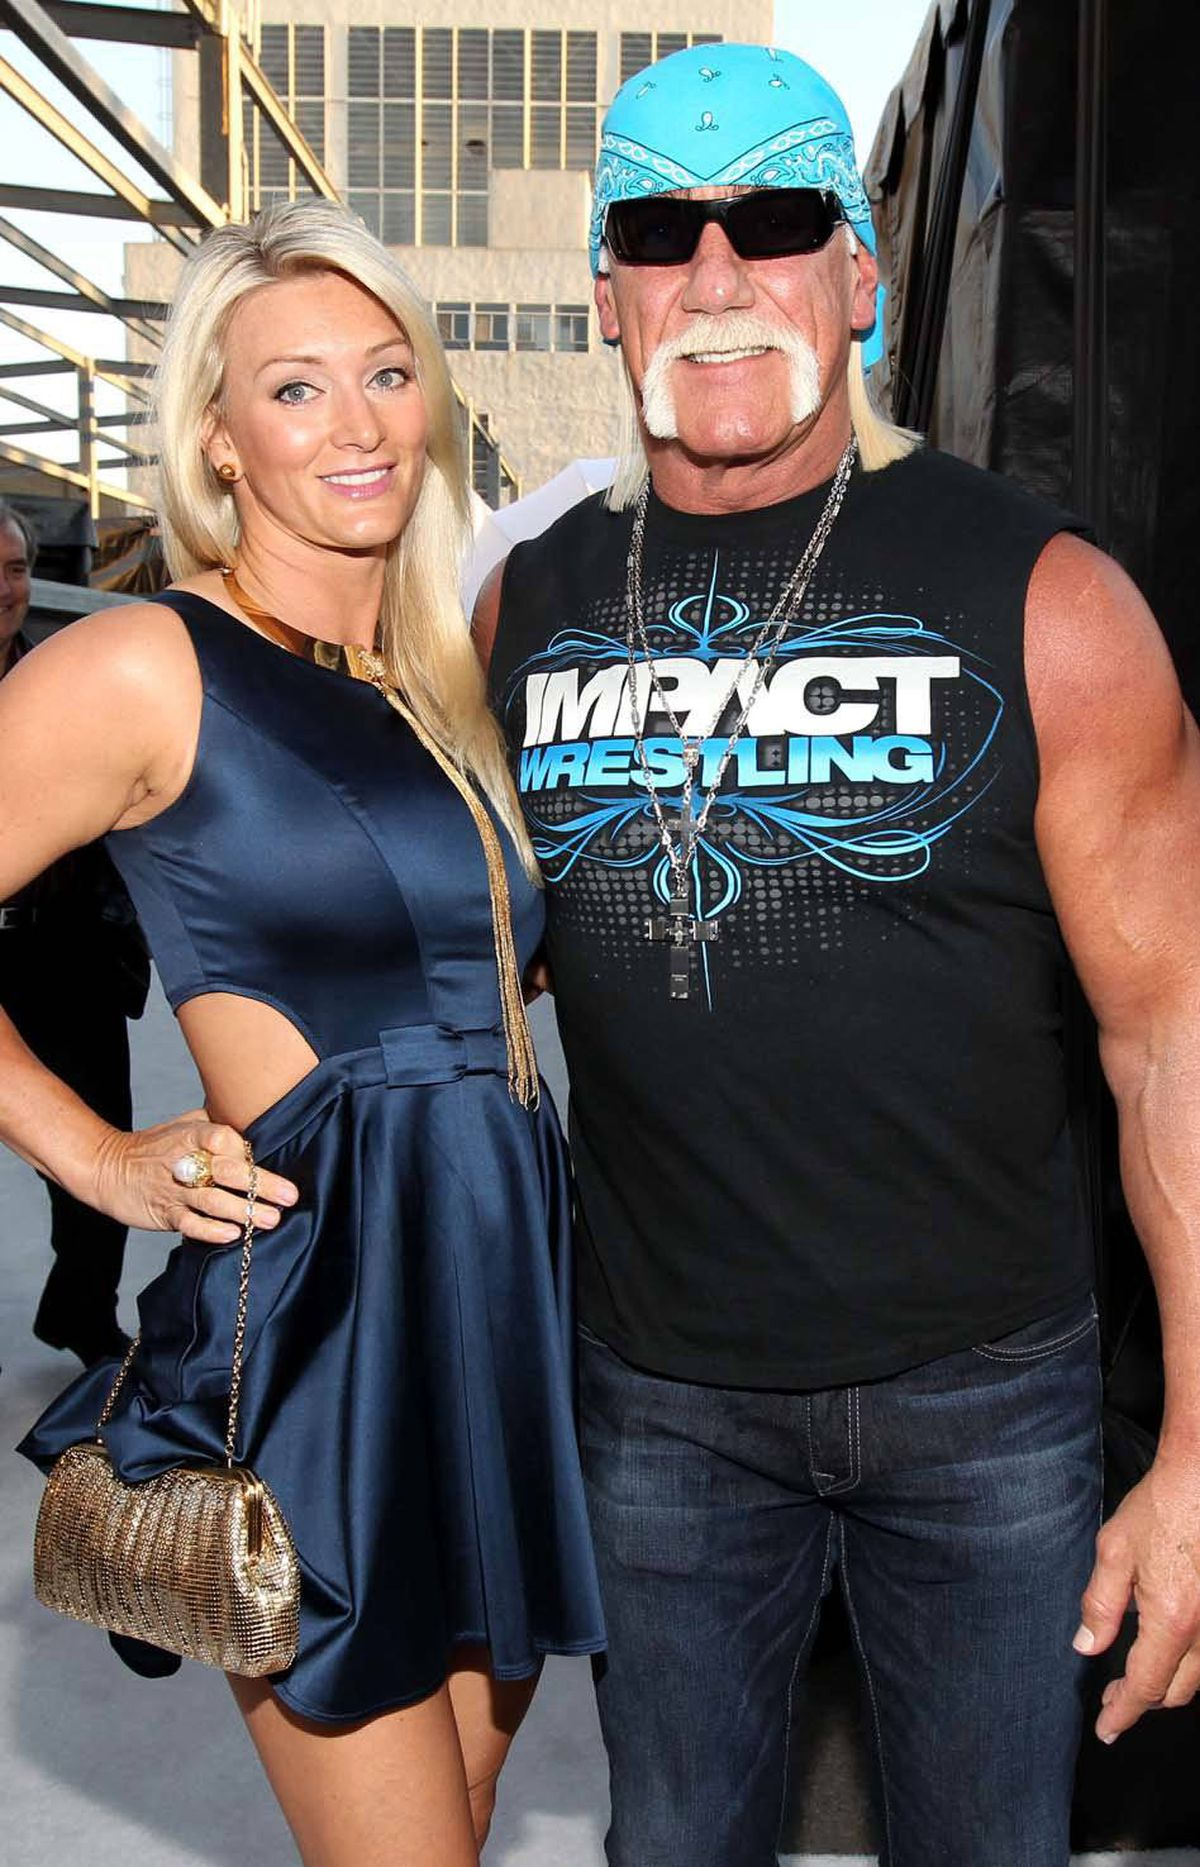 Pro wrestler Hulk Hogan, who is currently suing his ex-wife over allegations in her memoir that he had gay lovers, attends the Spike TV 2011 Video Game Awards in Los Angeles on Saturday with an incredibly hot woman whose presence erases all doubt about the sexual orientation of a man who spends hours in the gym every day and wrestles other men for a living.